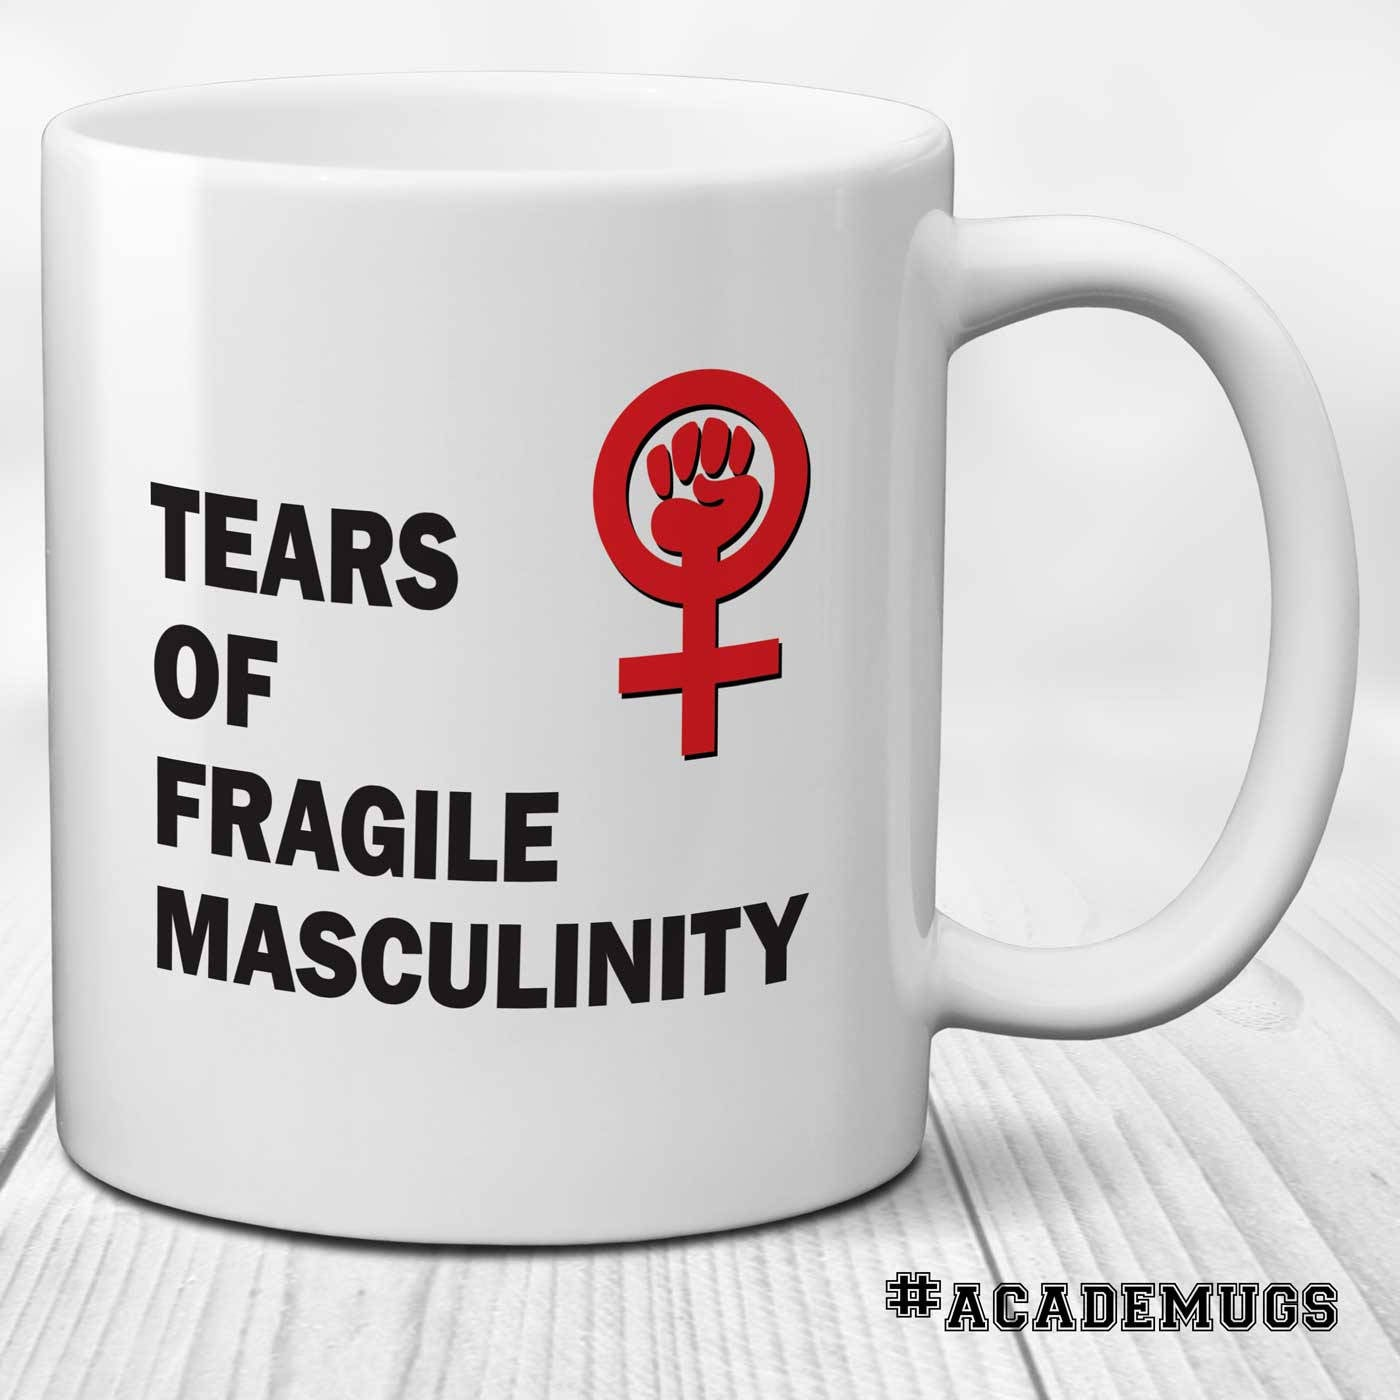 Tears of Fragile Masculinity Mug